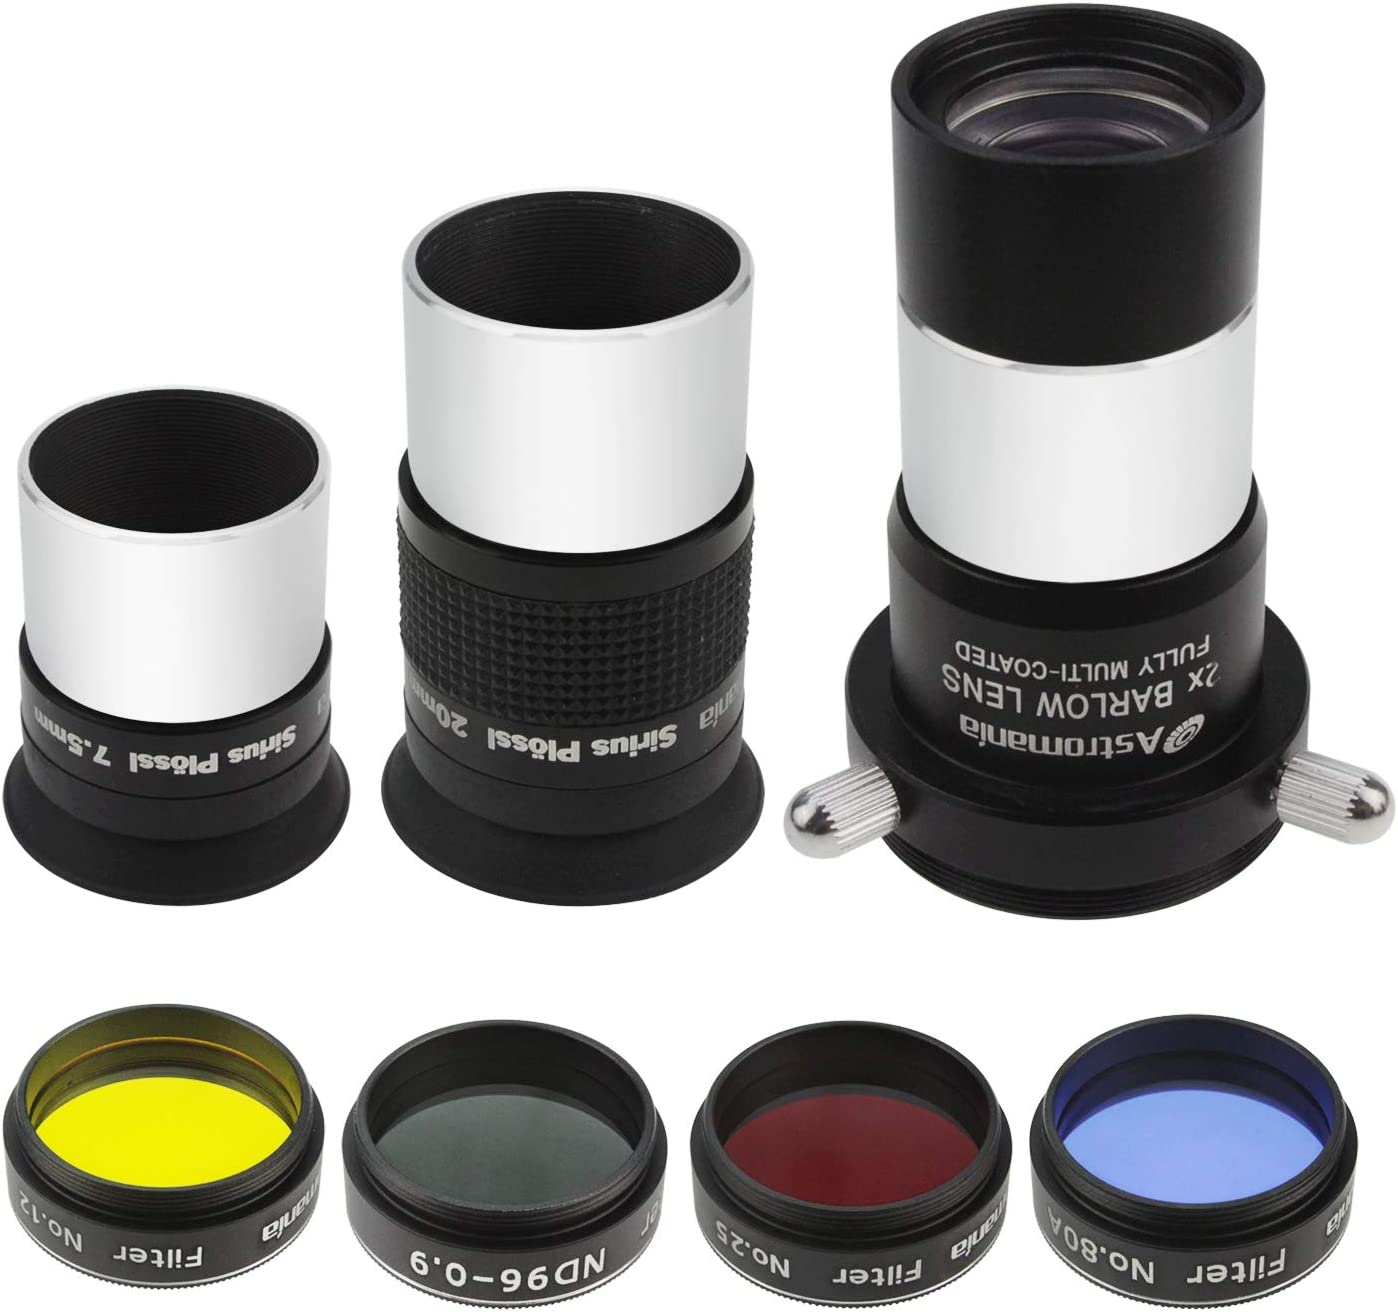 a Useful Set of Accessories for The Newcomer to Astronomy with high Performance-Price Ratio Astromania 1.25-Inch Astronomical Telescope Accessory Kit